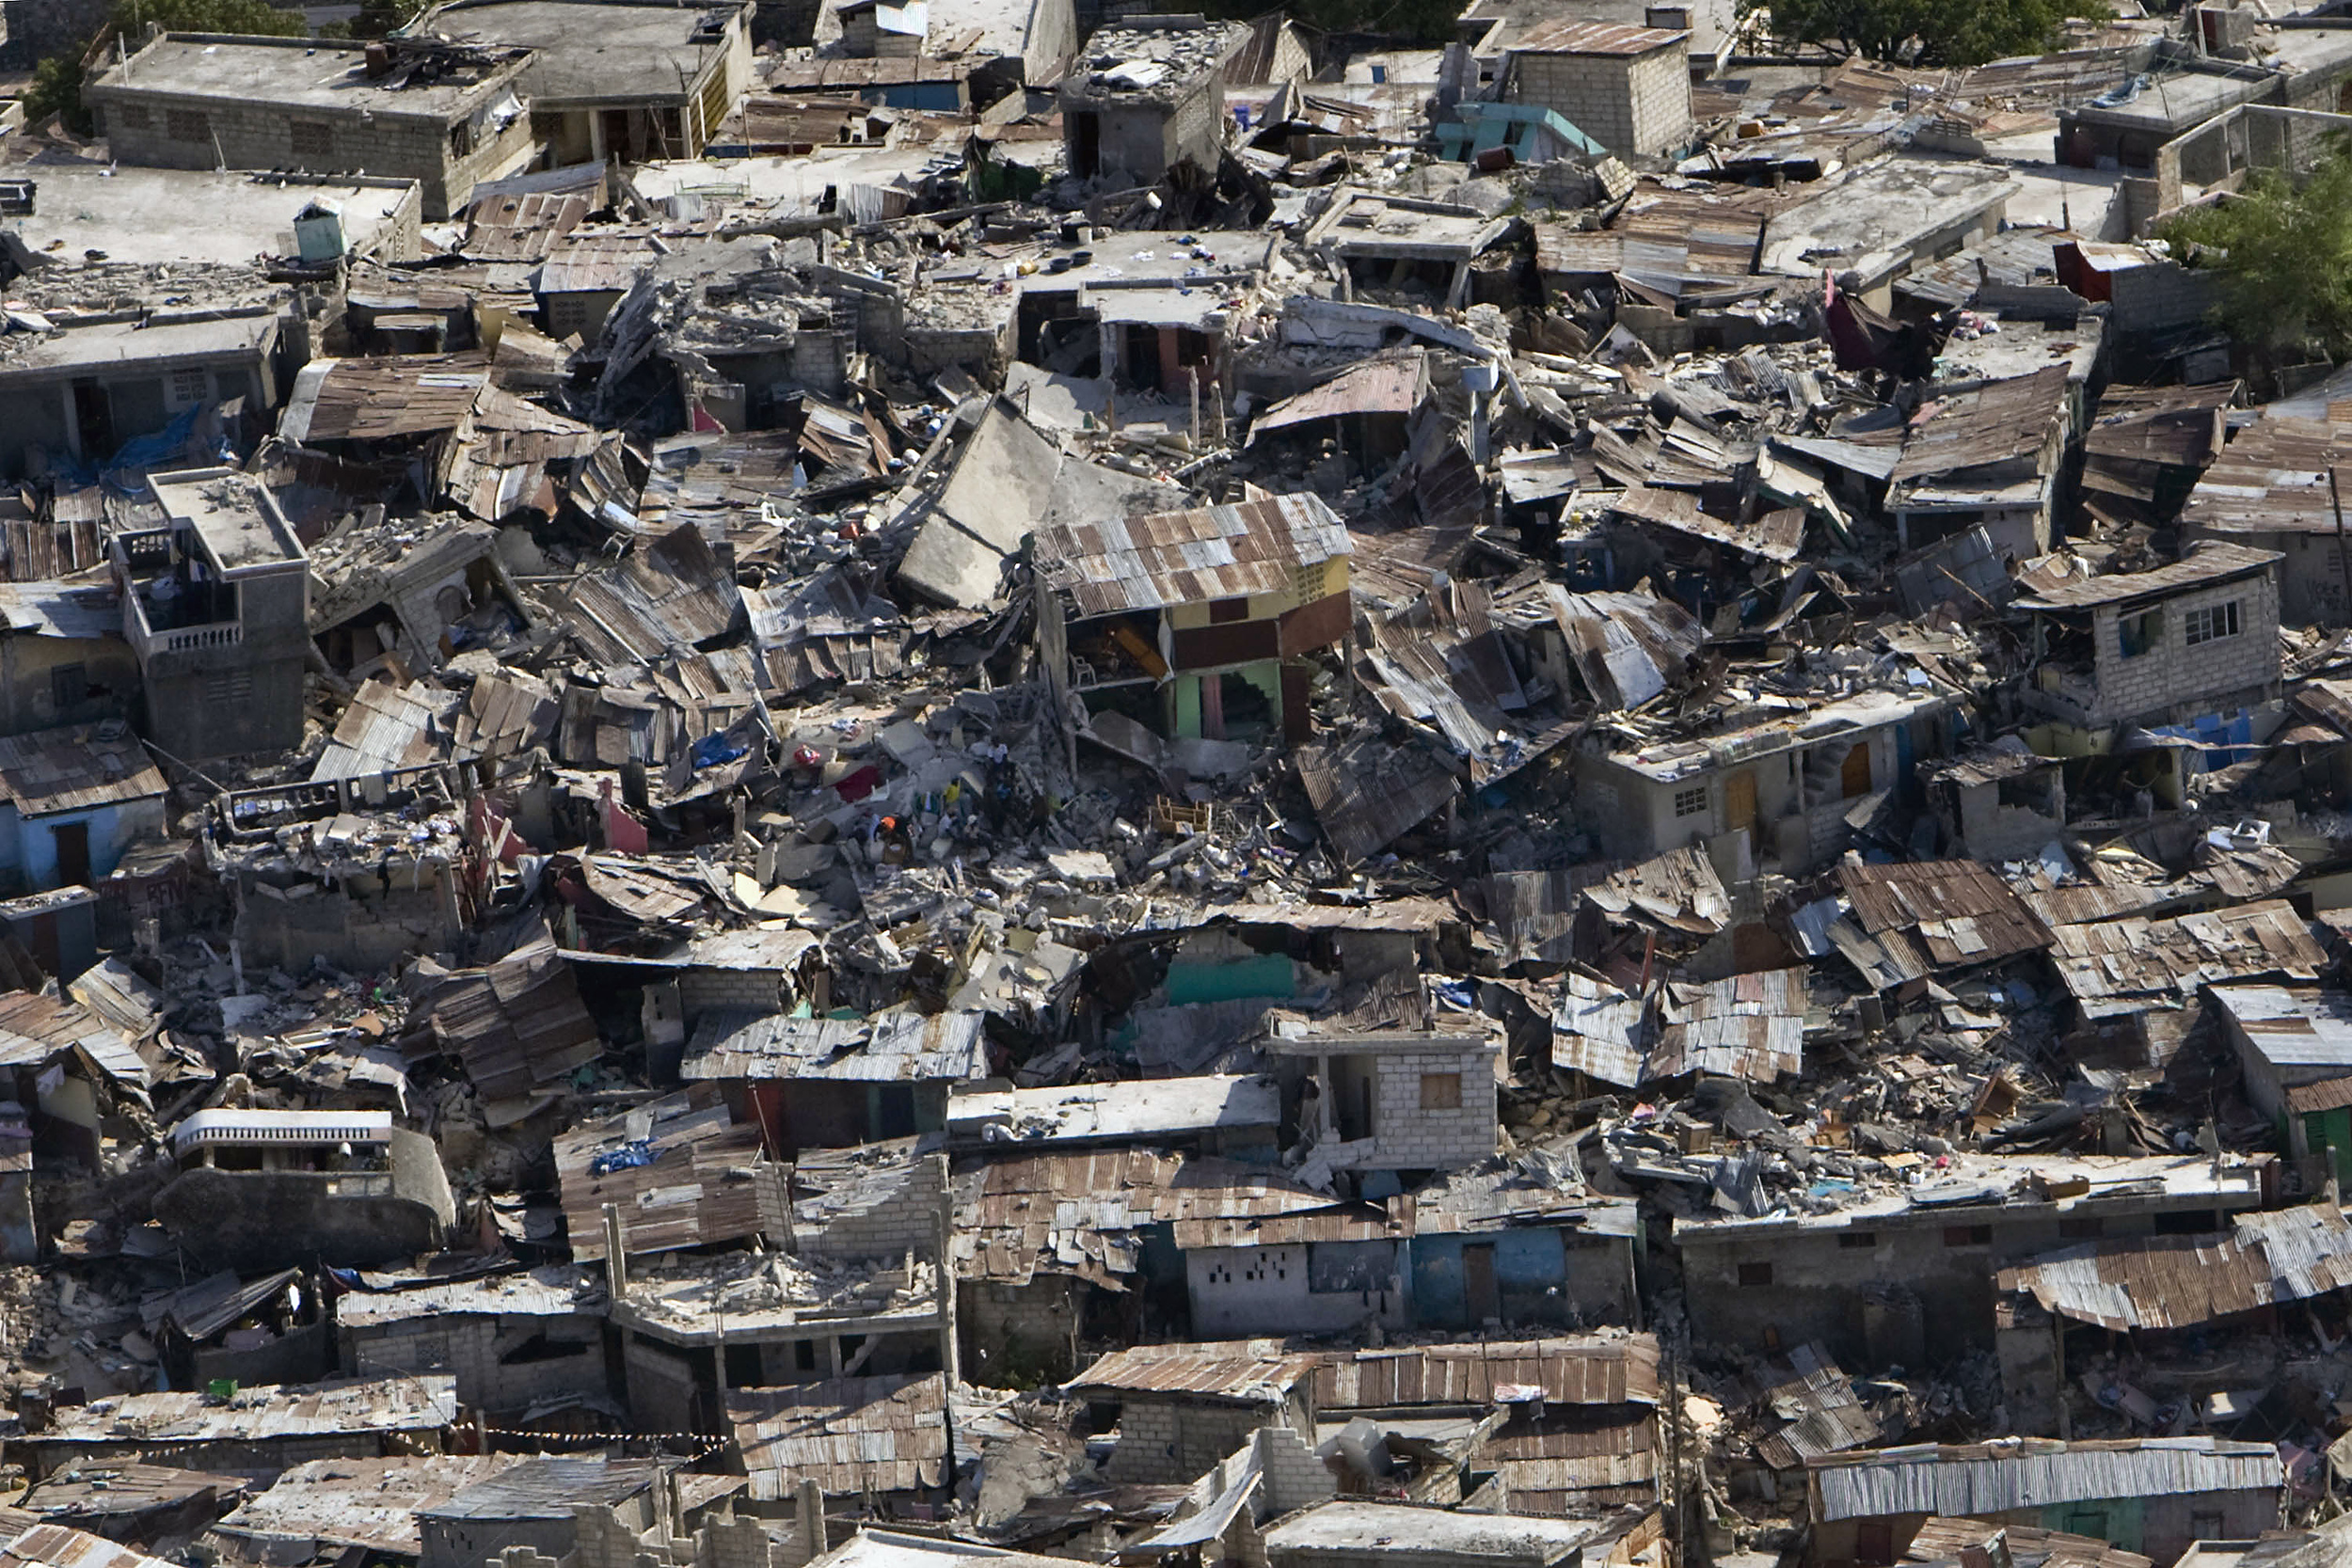 A poor neighbourhood shows the damage after an earthquake measuring 7 plus on the Richter scale rocked Port au Prince Haiti on January 12, 2010. PhotoUN Photo/Logan Abassi.